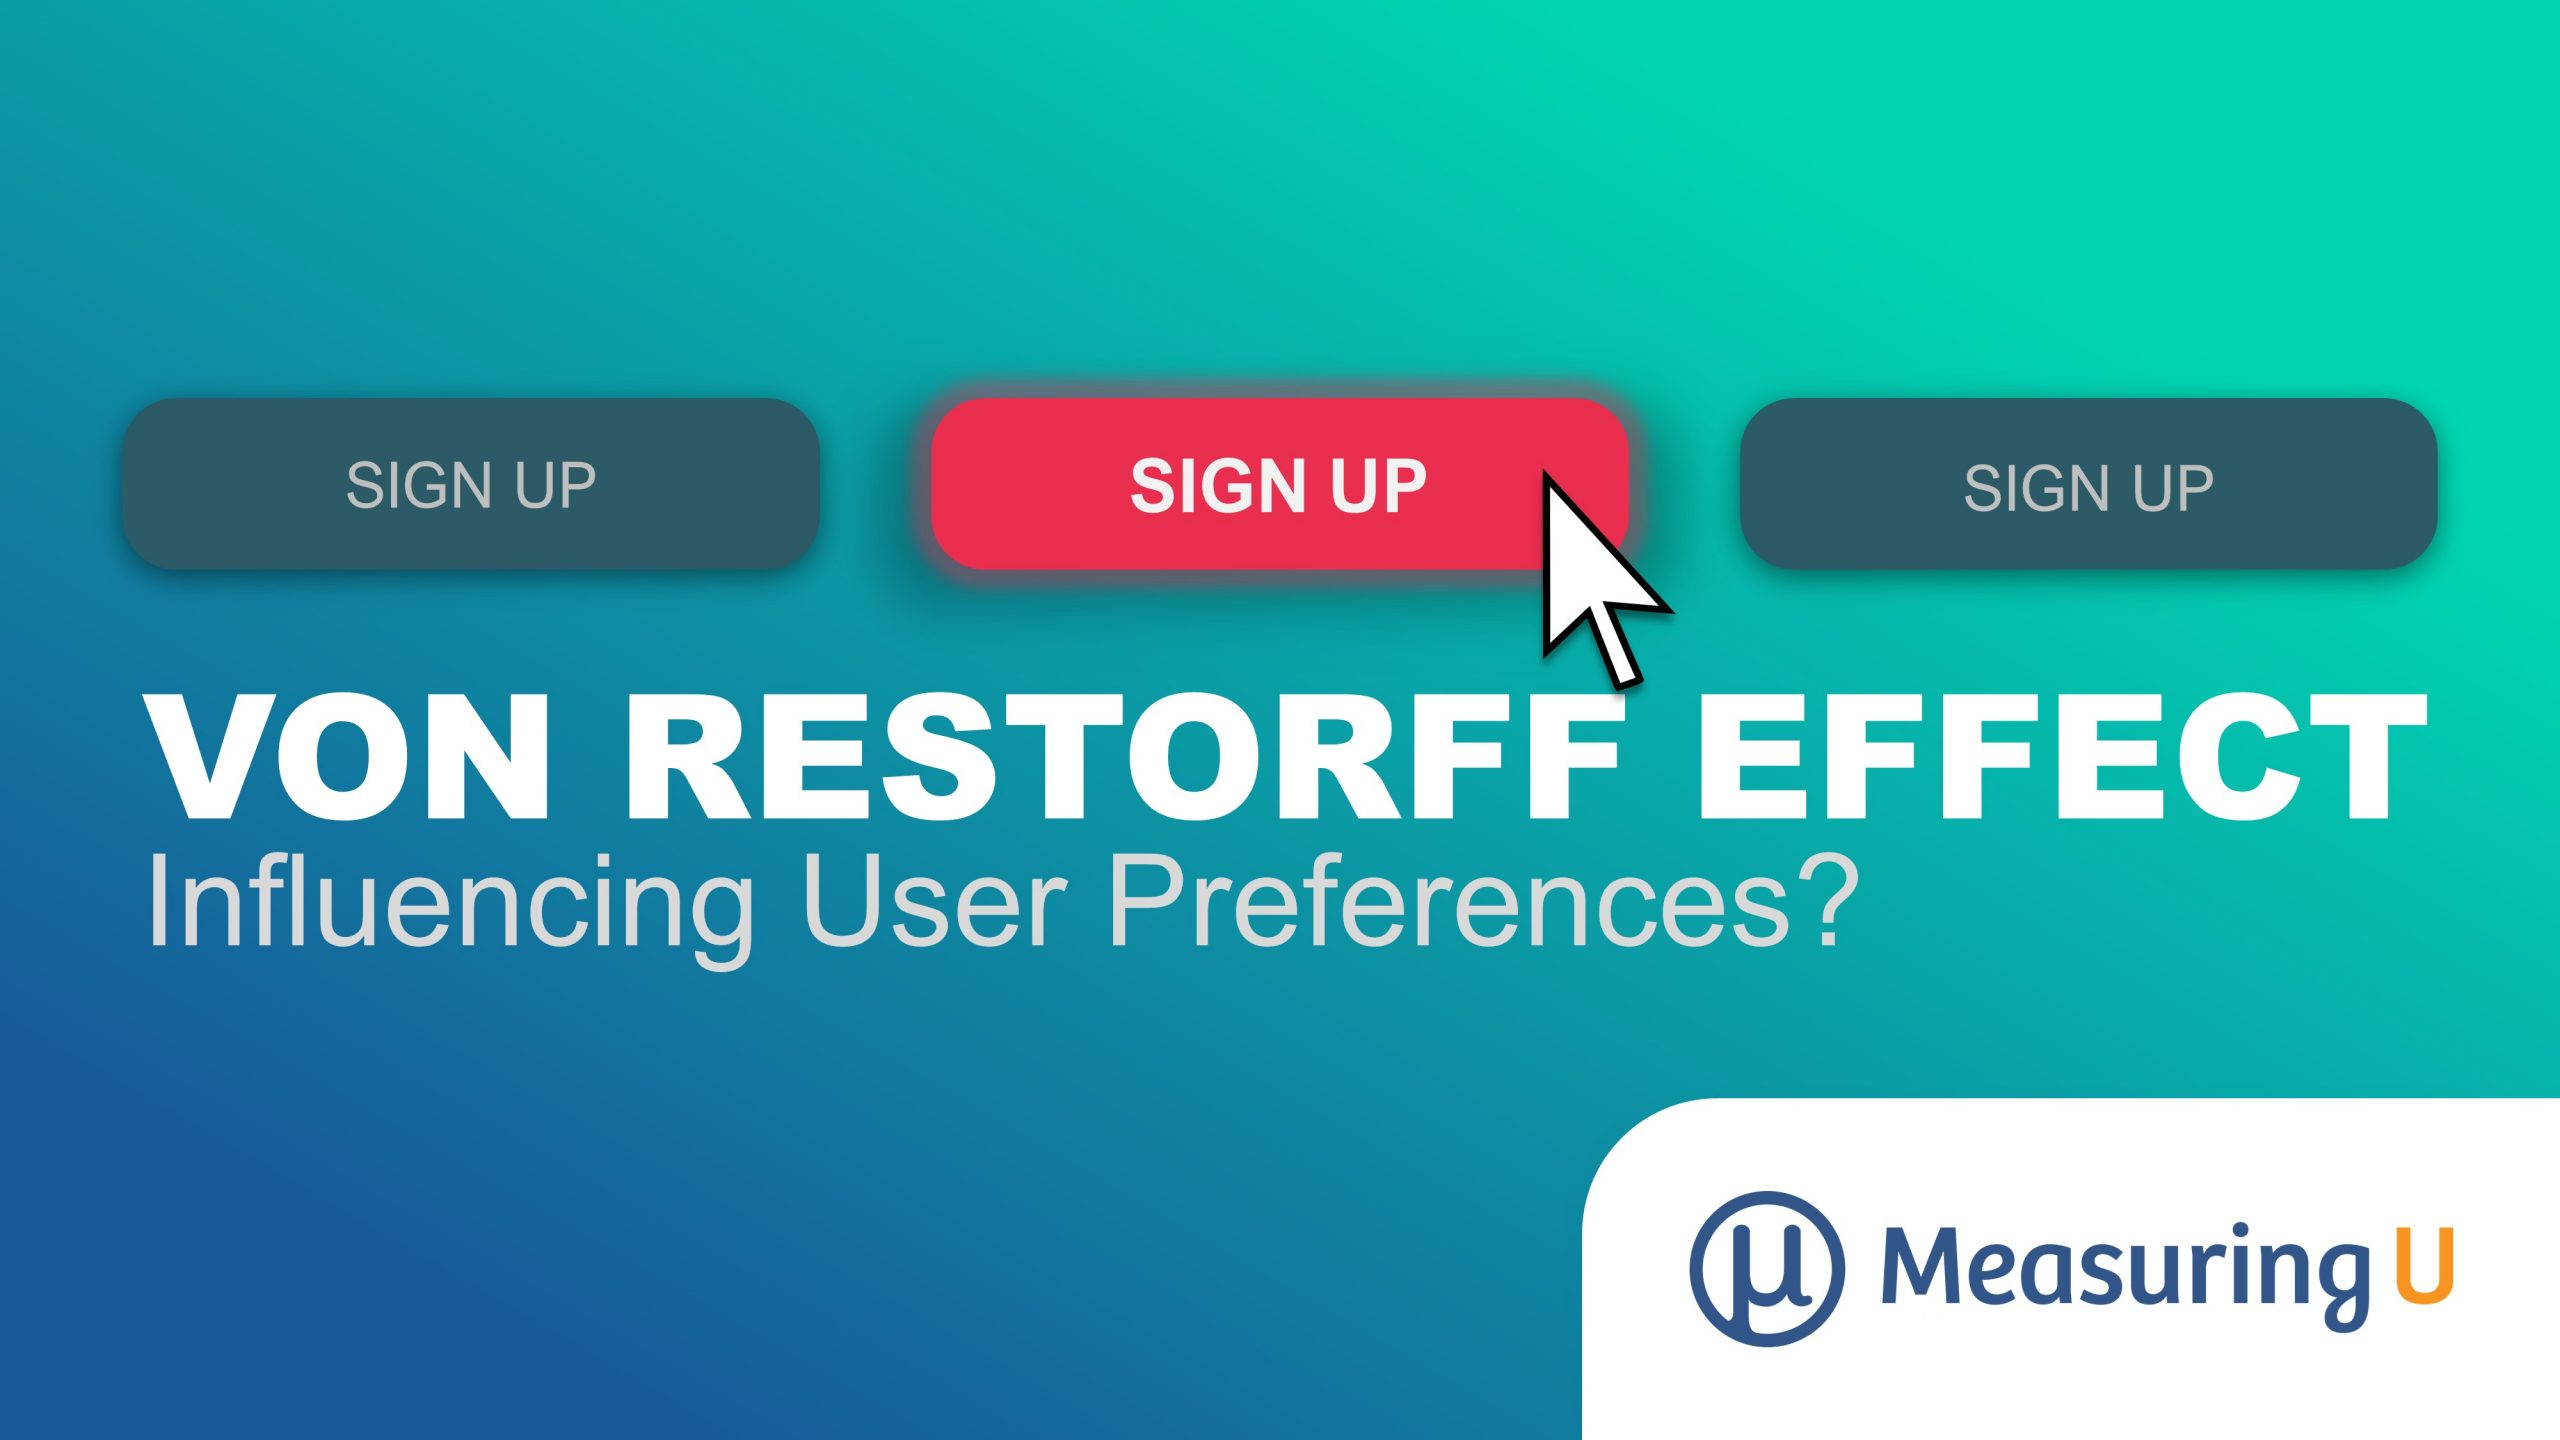 Does the Von Restorff Effect Influence User Preference?